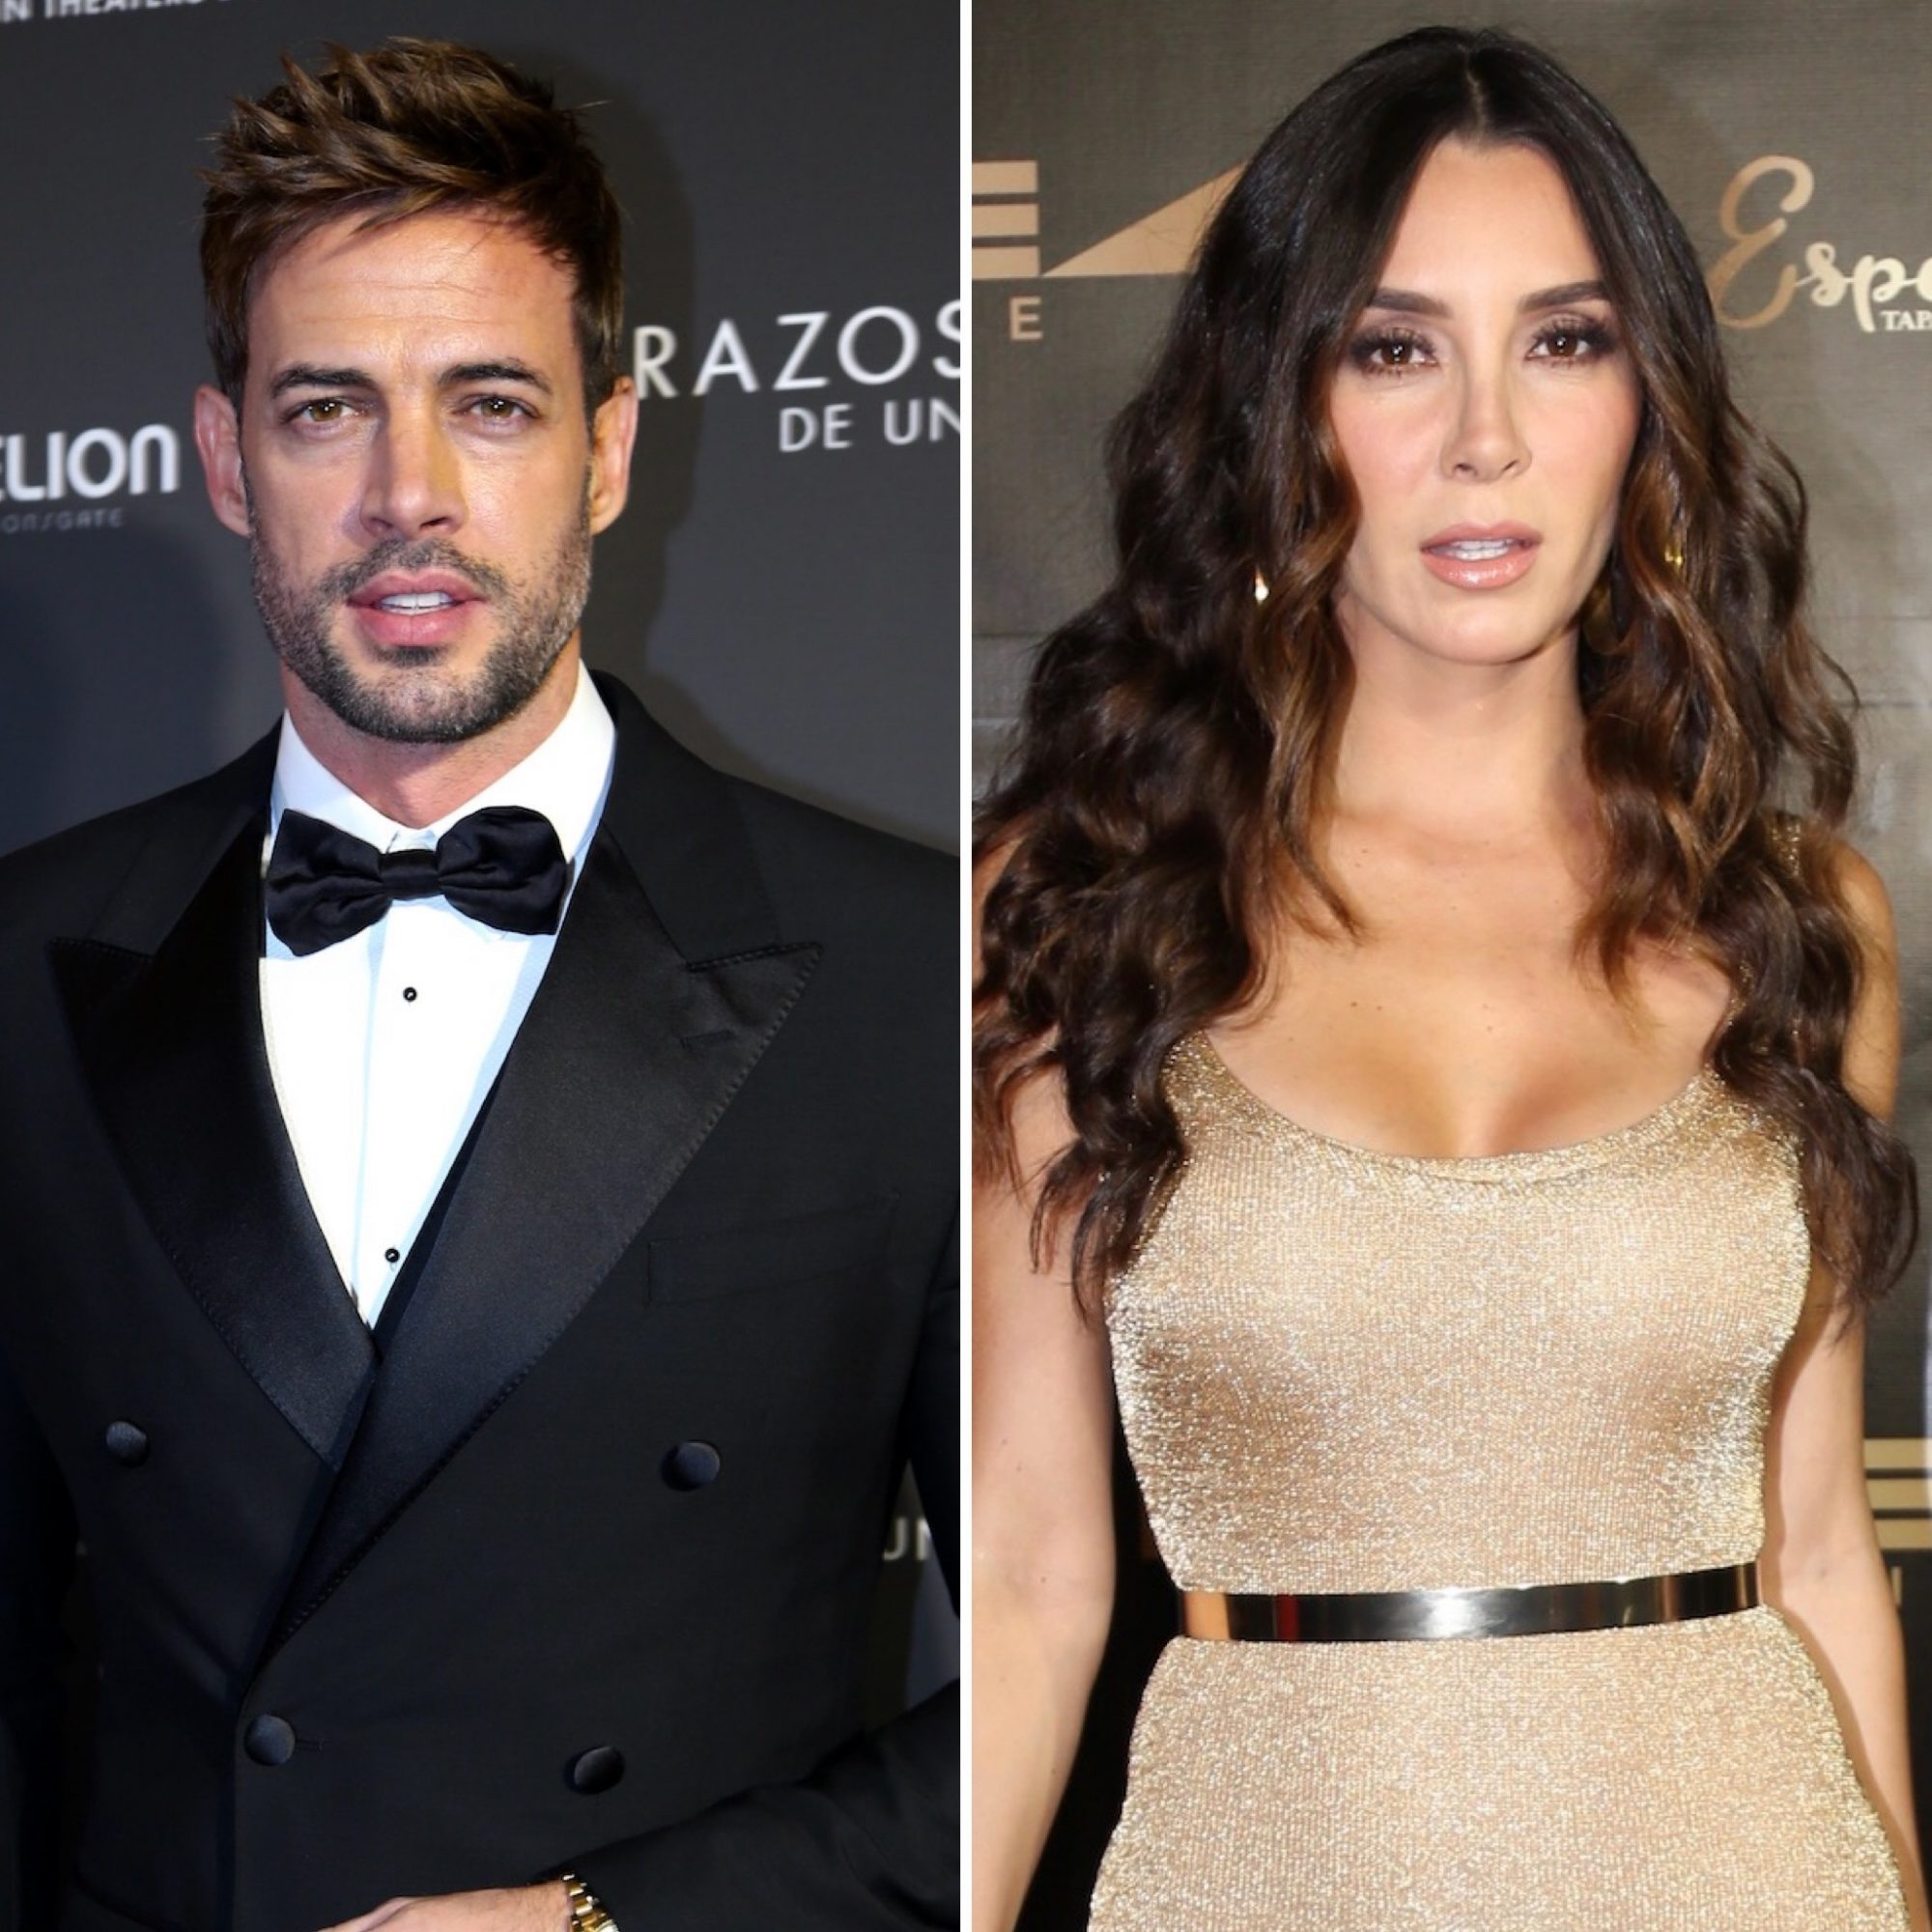 william-levy-elizabeth-gutierrez.jpg